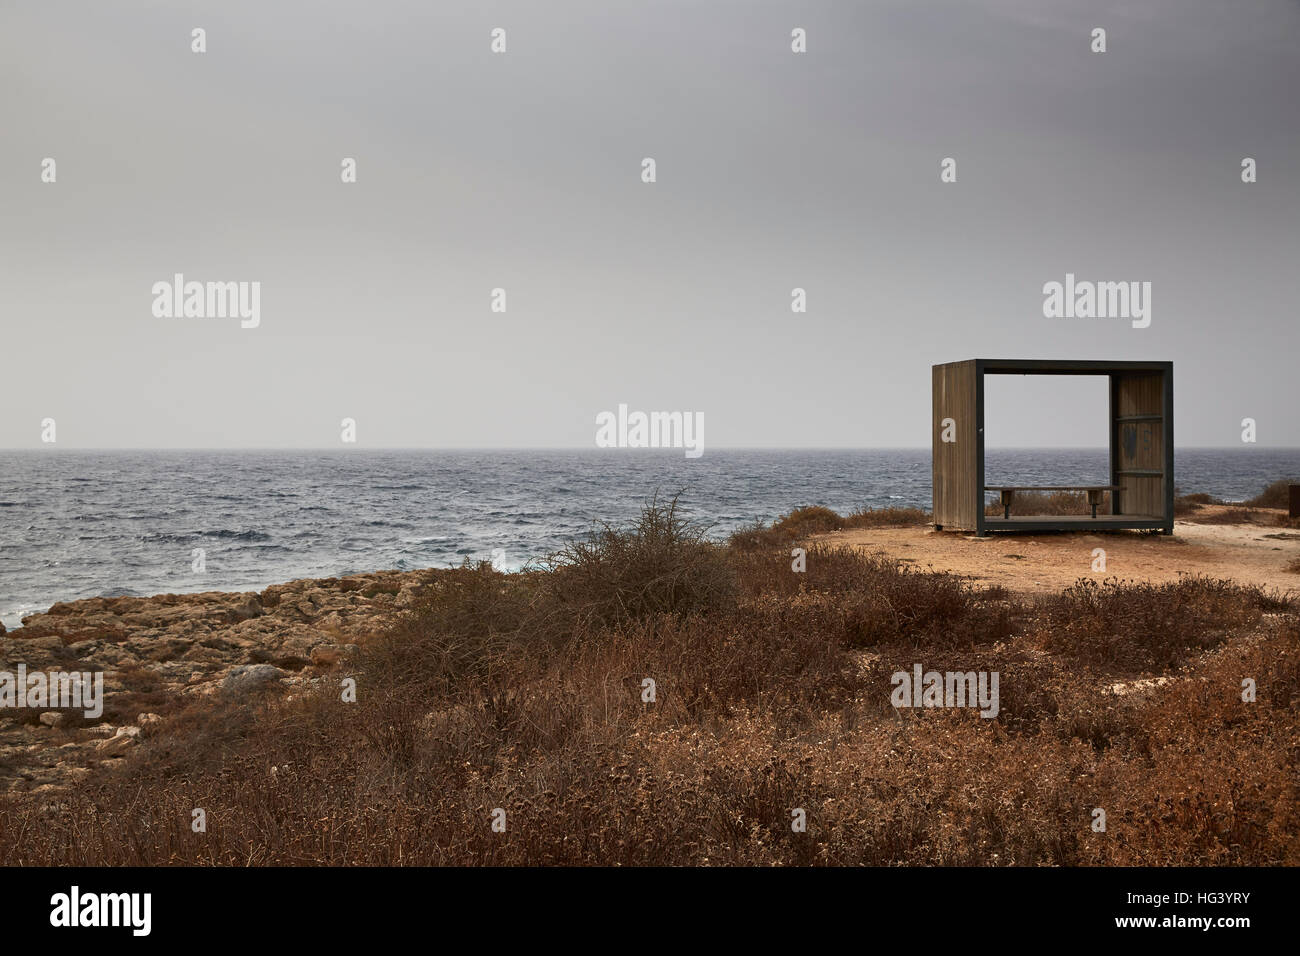 Paphos, Cyprus. Beach pavilion by the ocean. - Stock Image